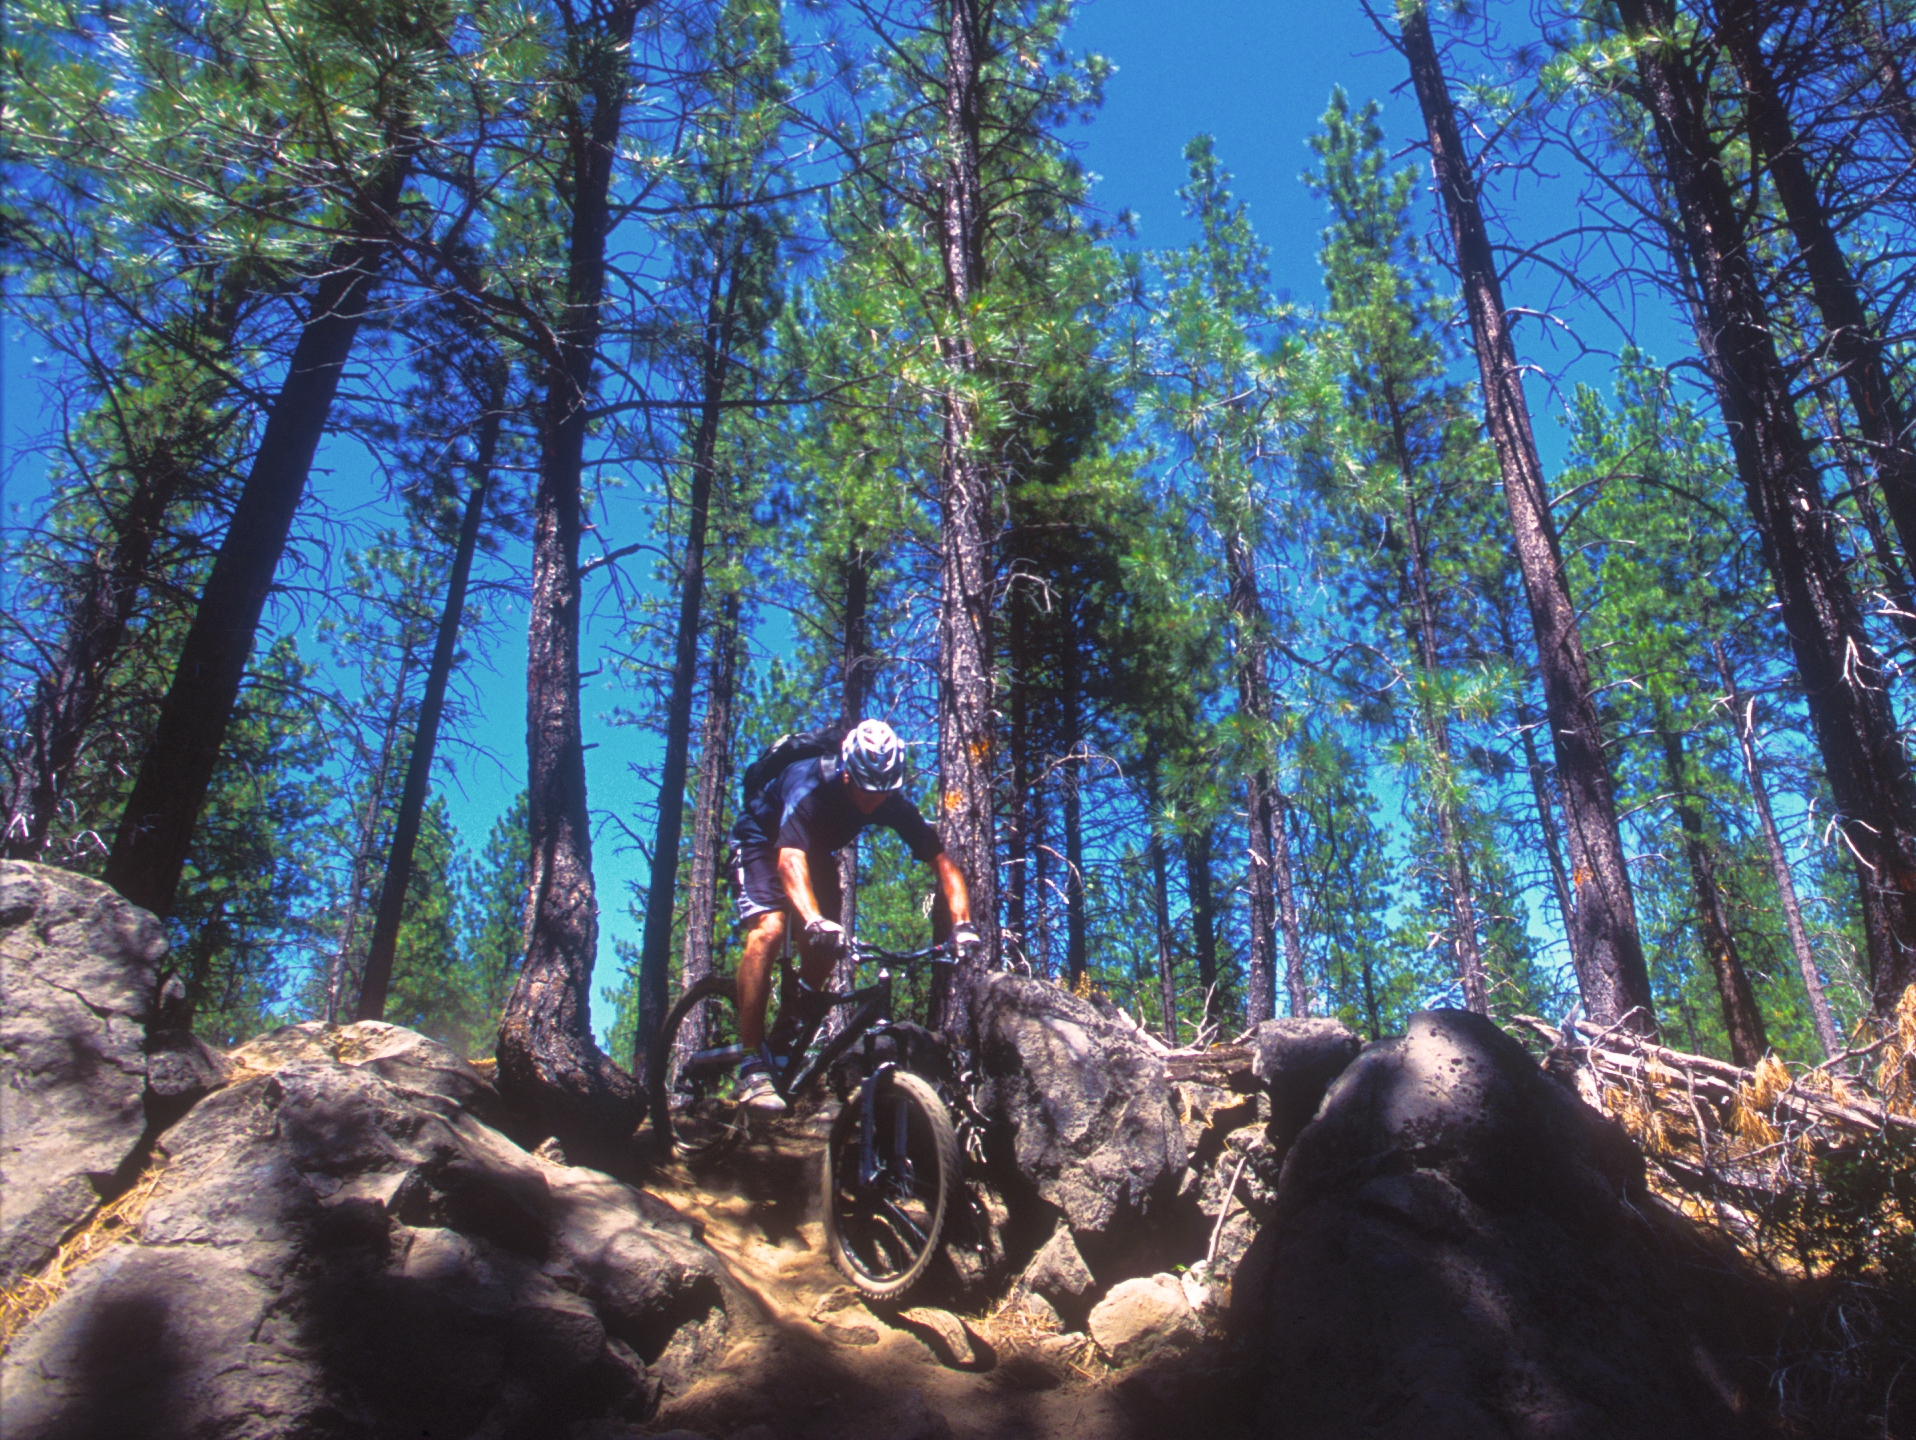 Oregon Cascade Singletrack guided mountain bike tour, Bend OR twists through logpole pine forests and past mountain lakes